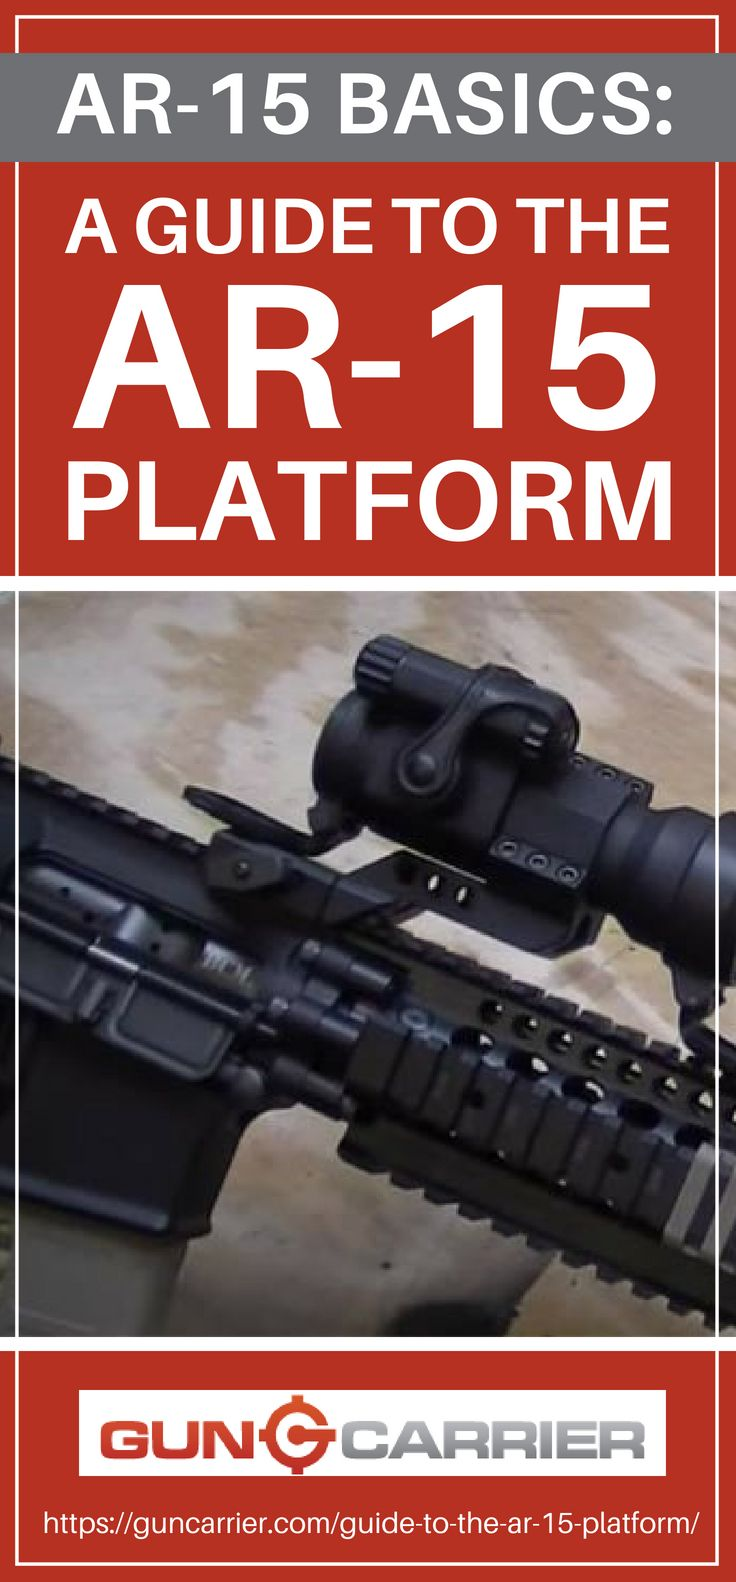 medium resolution of ar 15 basics a guide to the ar 15 platform https